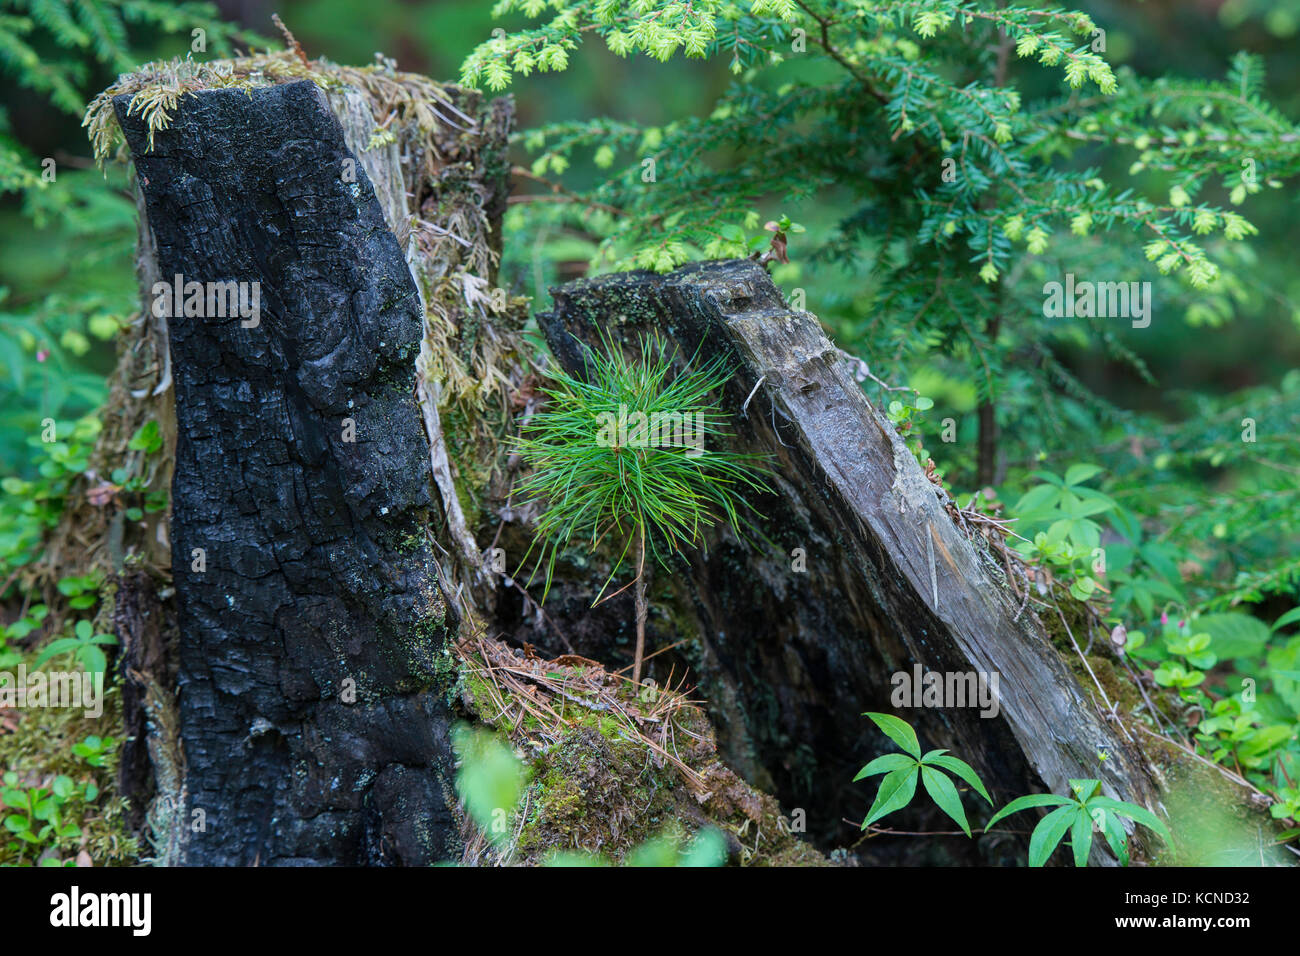 pine seedling growing from stump, north eastern Ontario, Canada Stock Photo